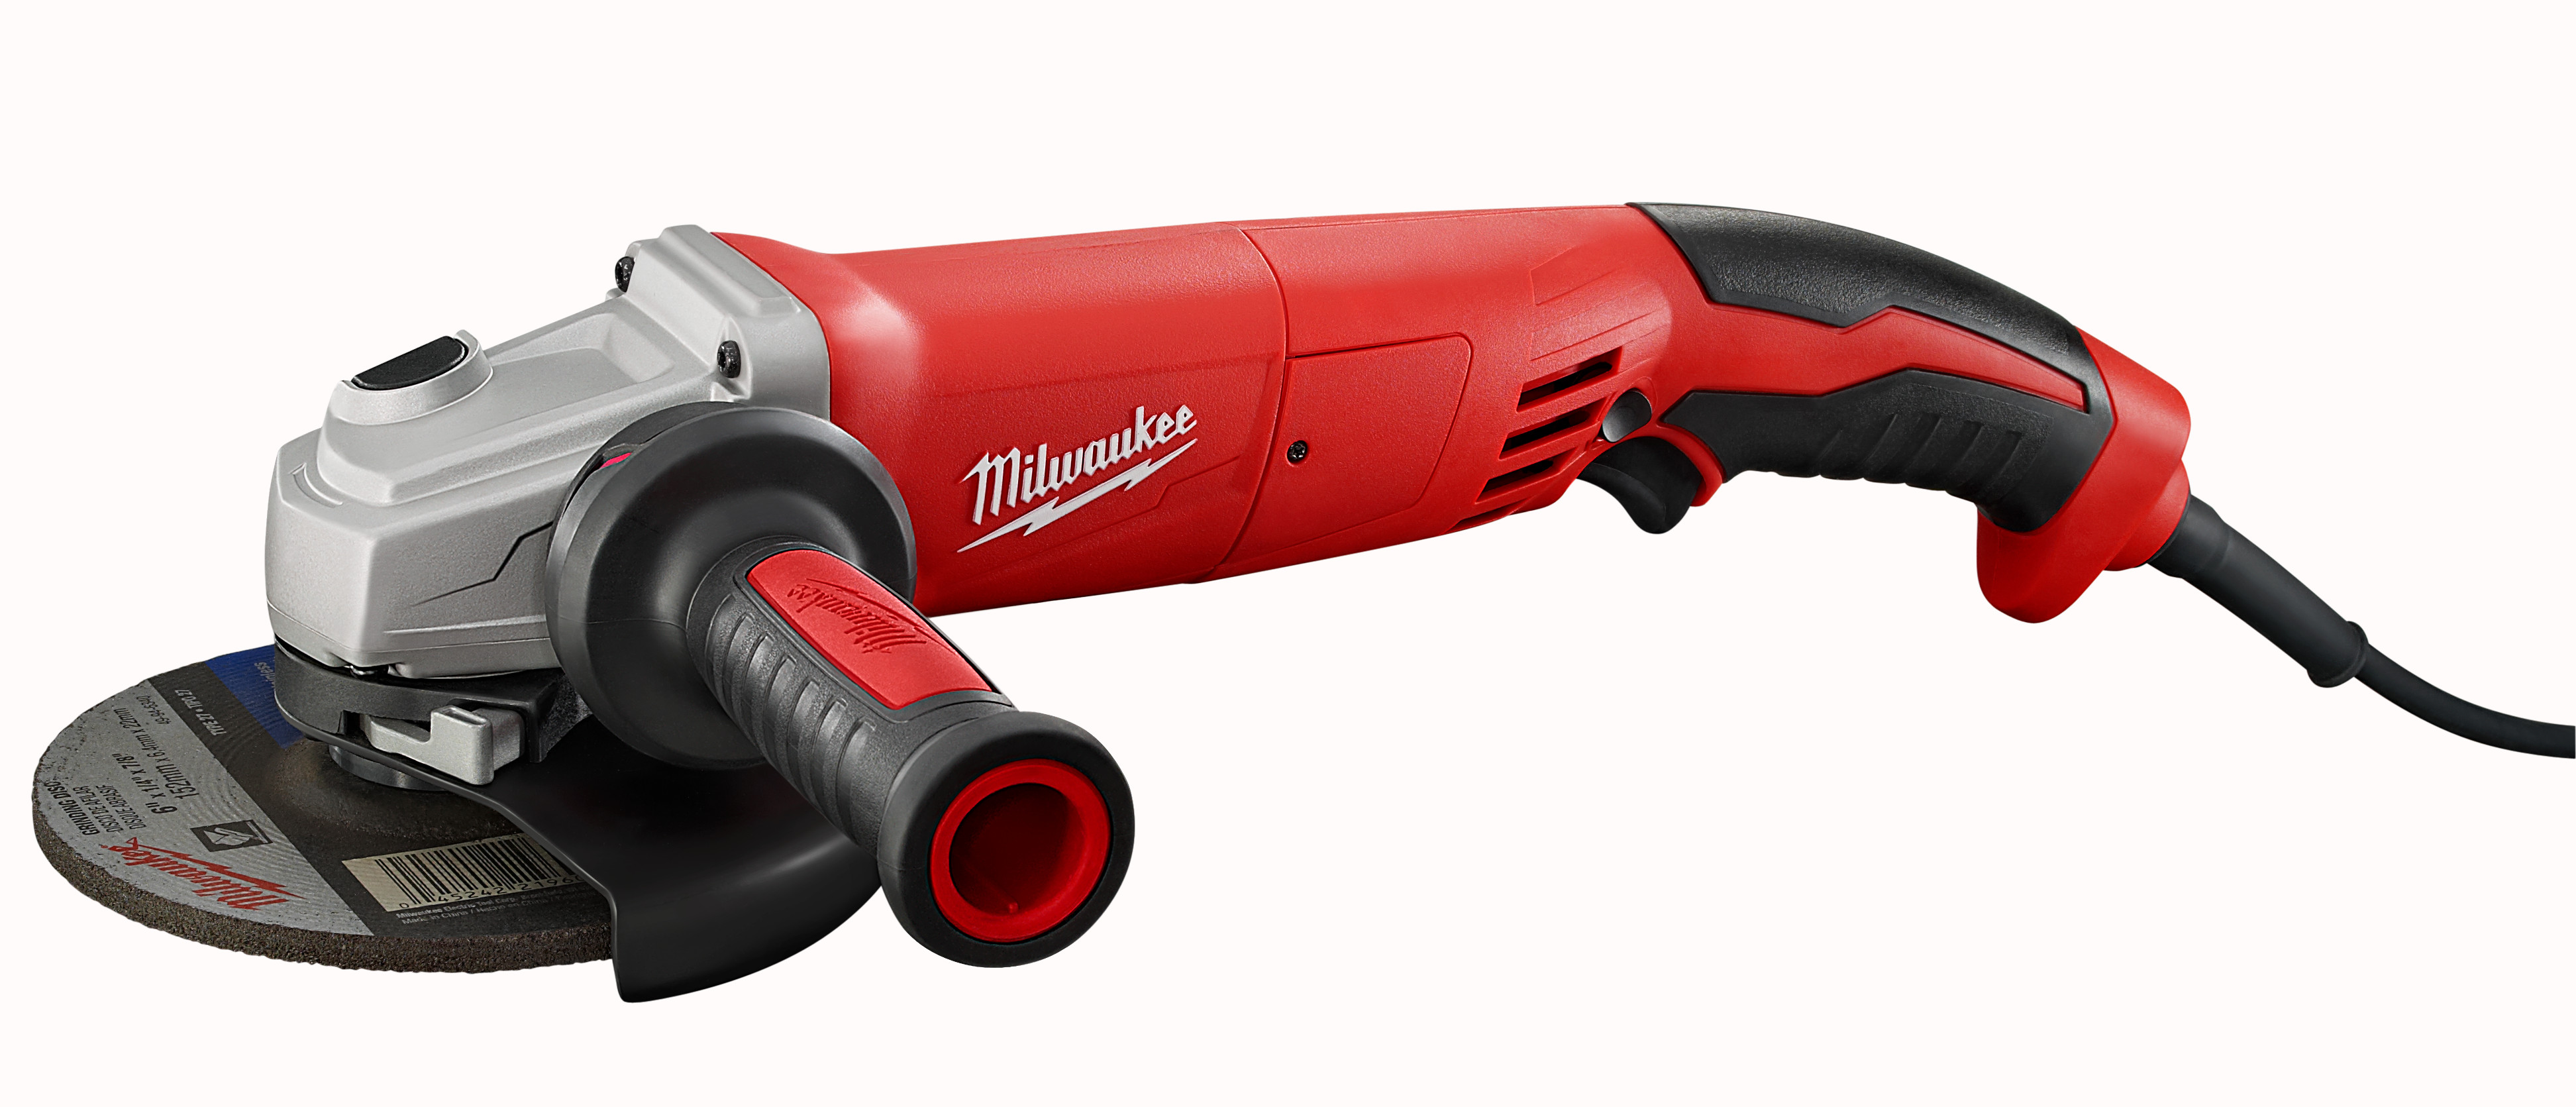 Milwaukee® 6124-30 Double Insulated Small Angle Grinder, 5 in Dia Wheel, 5/8-11 Arbor/Shank, 120 VAC, Black/Red